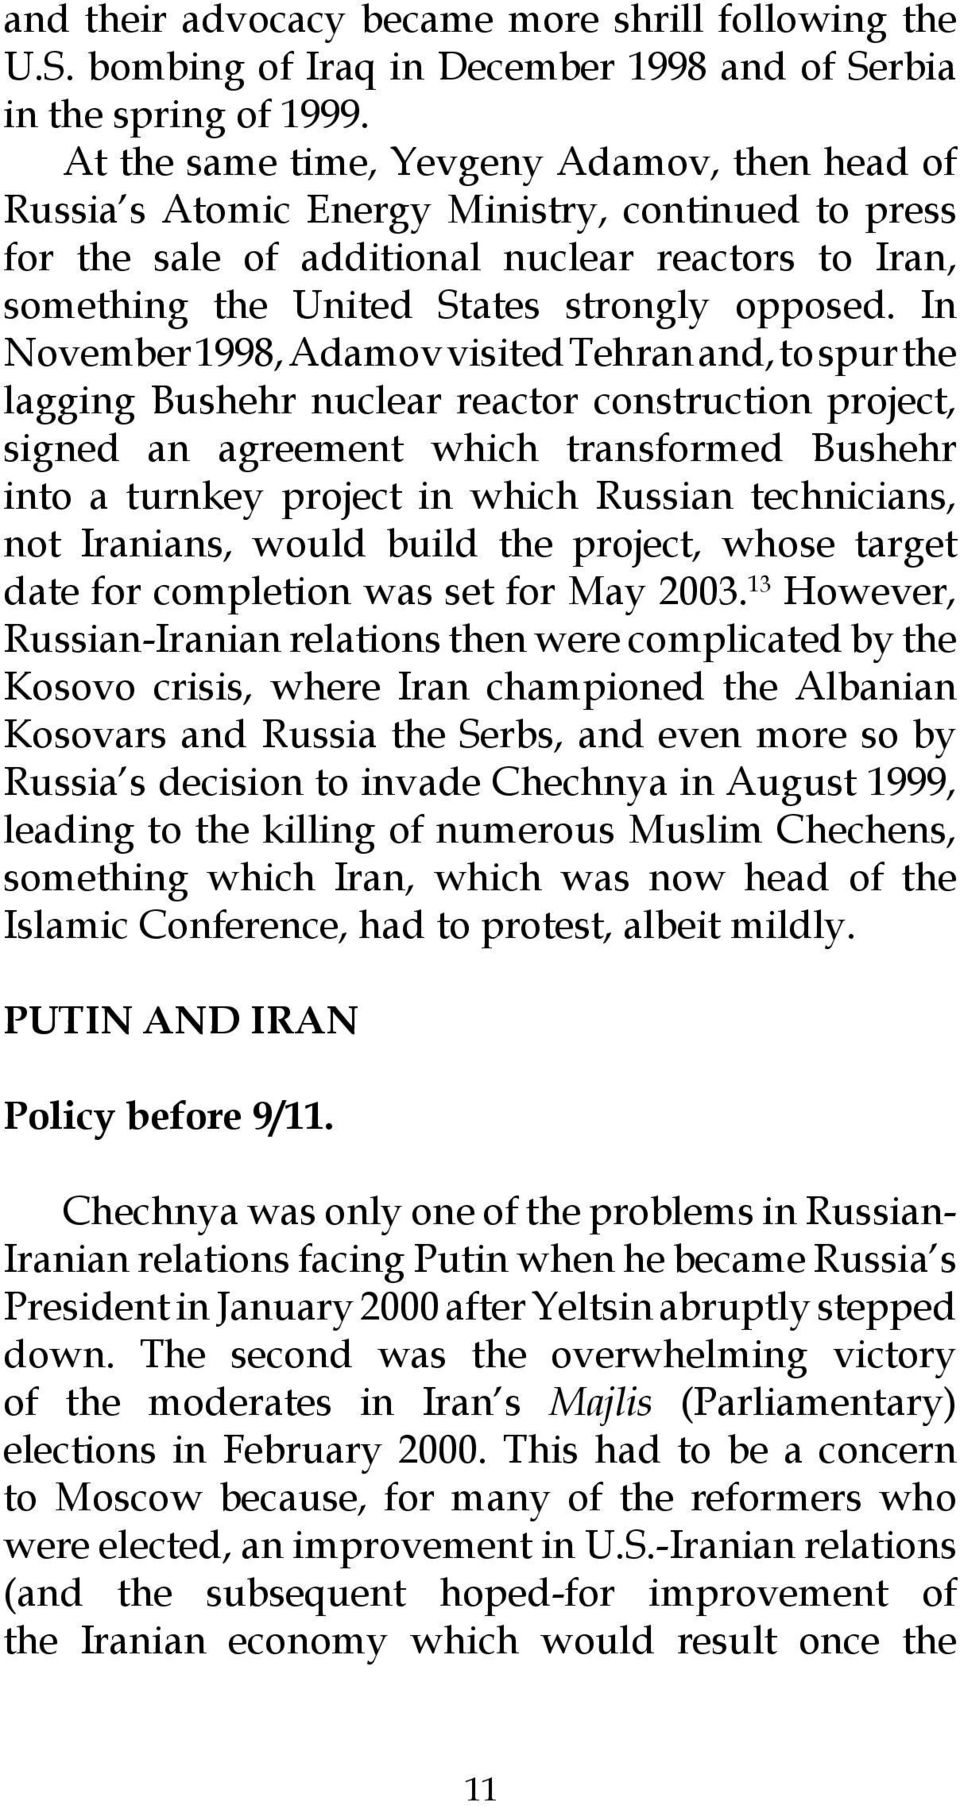 In November 1998, Adamov visited Tehran and, to spur the lagging Bushehr nuclear reactor construction project, signed an agreement which transformed Bushehr into a turnkey project in which Russian